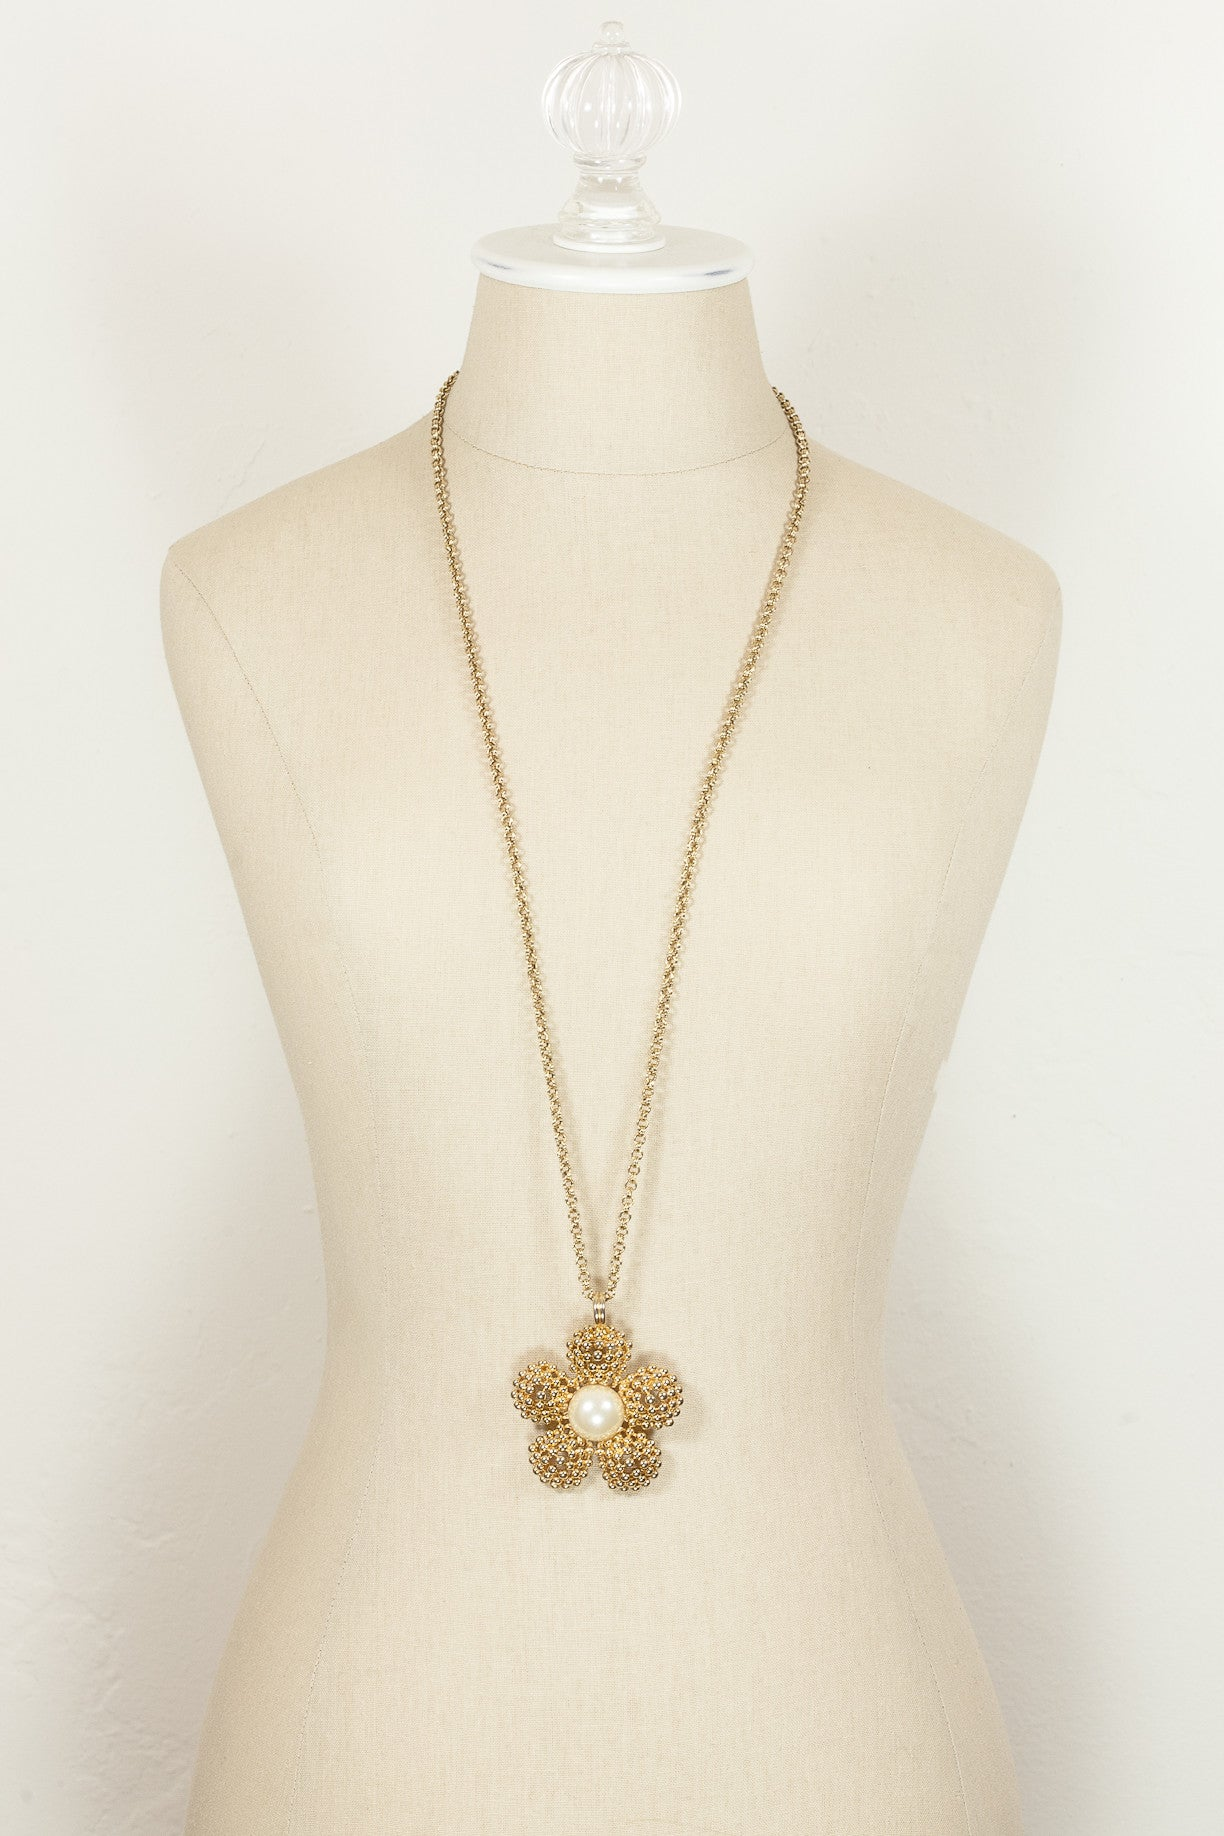 60's__F.O.__Bold Daisy Pendant Necklace